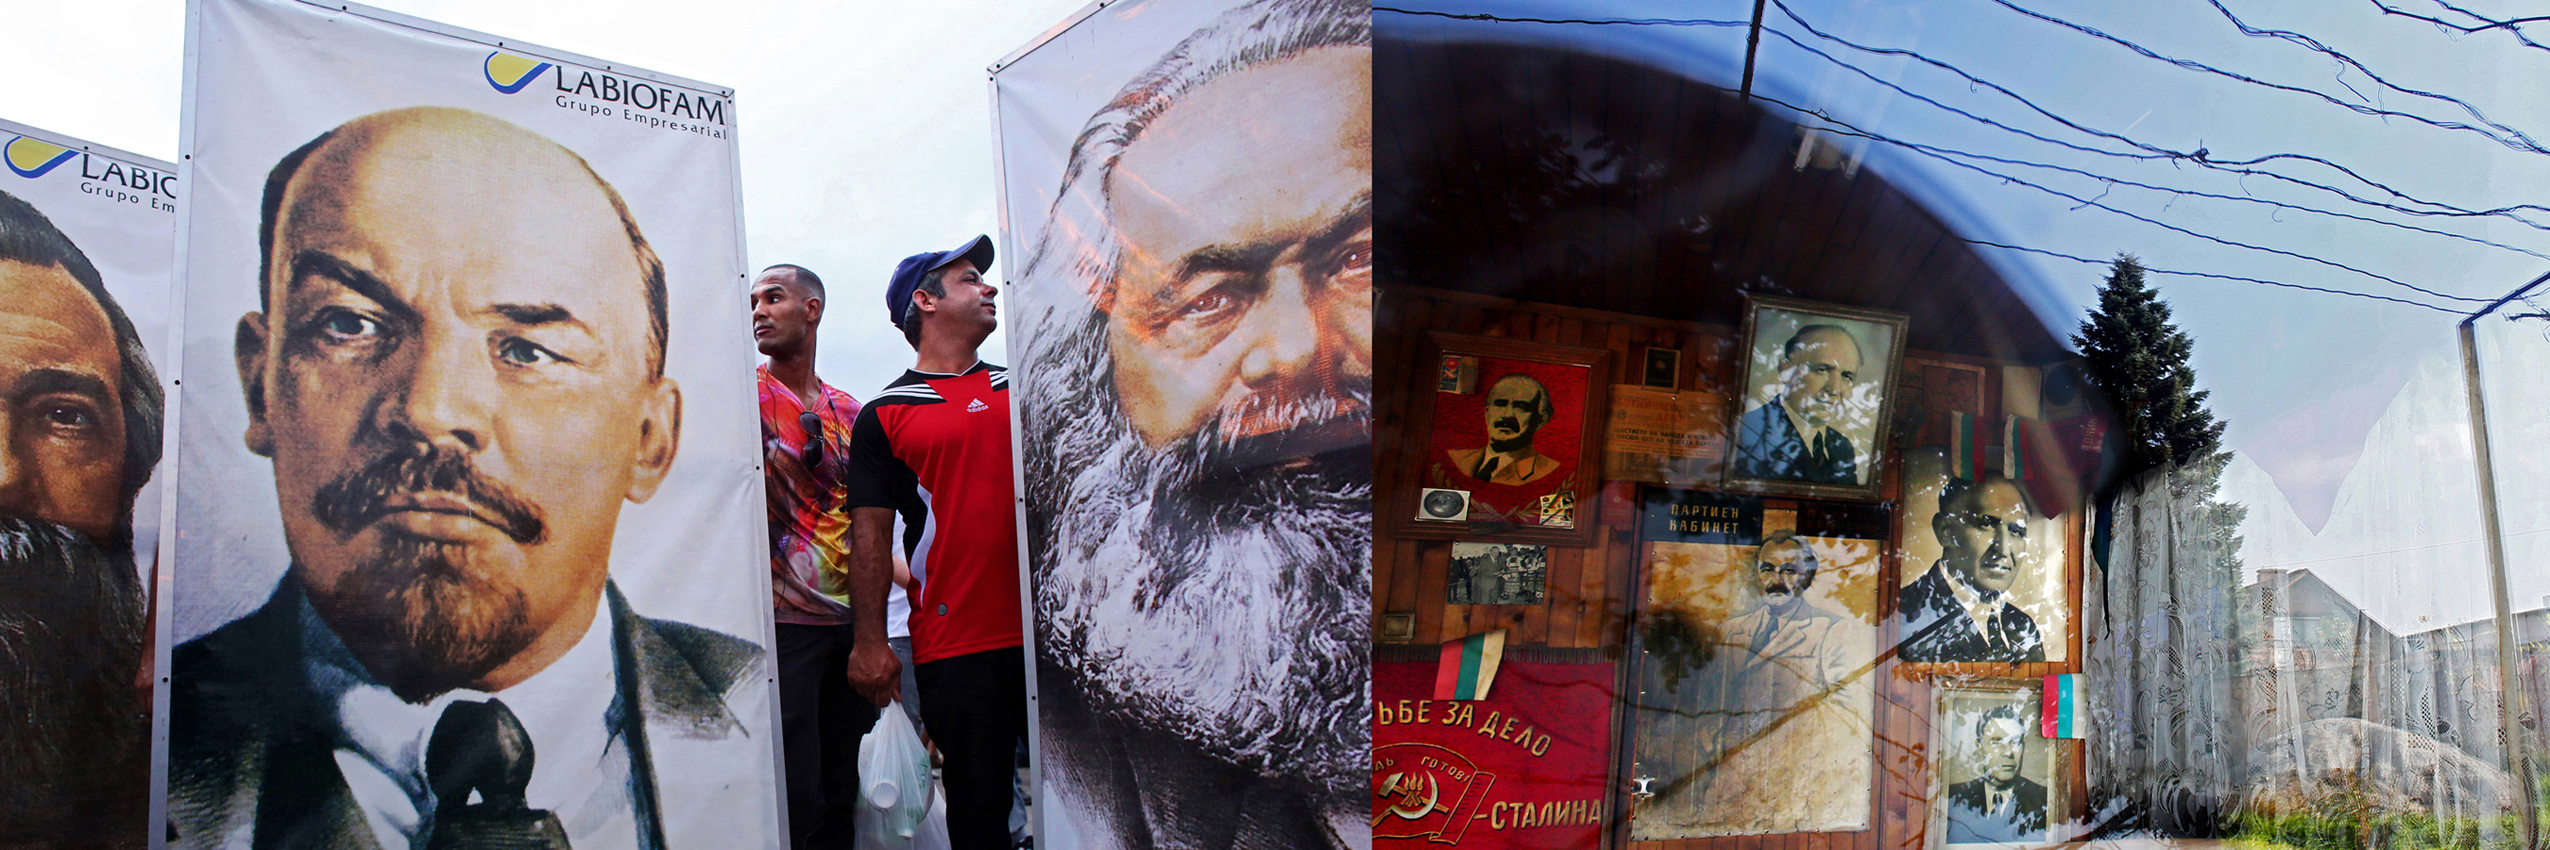 Left - (L-R) Participants in the 1st of May Labor Day parade march of 2015 in Havana, Cuba, hold signs of German Communist revolutionary Friedrich Engels, Russian Communist leader Vladimir Lenin and German Communist revolutionary Karl Marx. In Cuba, the day known as Dia del Trabajo is a call for people to show support to their socialist government and the Cuban Revolution. Guests worldwide are known to join. While attendance is not mandatory, absences are usually noted and discouraged. The Communist years' Labor Day marches in Bulgaria were much like those in today's Cuba: people huddling with their co-workers in the early a.m. hours, waiting for their attendance to be accounted by their boss - or face social and professional retribution.  Right - Communist nostalgia is still very much alive in Bulgaria. Tato, a bar in Sofia (currently closed due to the death of its owner,) is decorated with portraits of Bulgarian Communist dictator Todor Zhivkov (upper center,) in Bulgaria's capital Sofia, on November 6th, 2014. His nickname and bar's namesake {quote}Tato{quote} is a play on the word {quote}dad{quote} in Bulgarian. Zhivkov was the head of state of the People's Republic of Bulgaria from March 4, 1954 until the day after the fall of the Berlin Wall, November 10, 1989, when he resigned under political pressure over the country's worsening economy and public unrest. I've used diptychs to bridge one country's past - communist Cuba - to another country's present - post-1989 Bulgaria - to show that political ideals, its profiteers and its victims, can remain unchanged by time or geography.